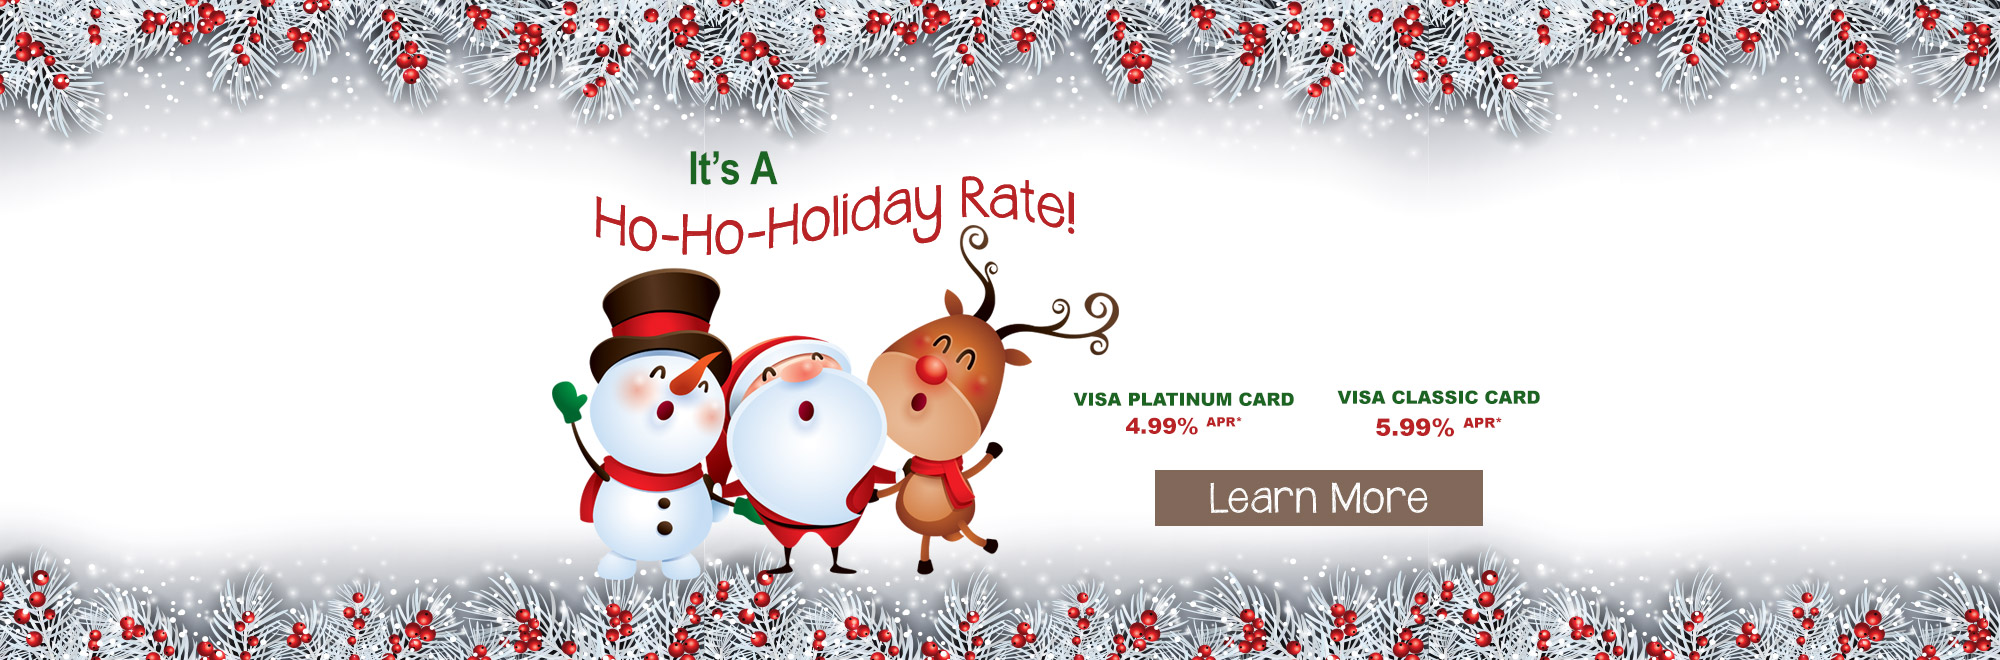 VISA Holiday Rate Banner